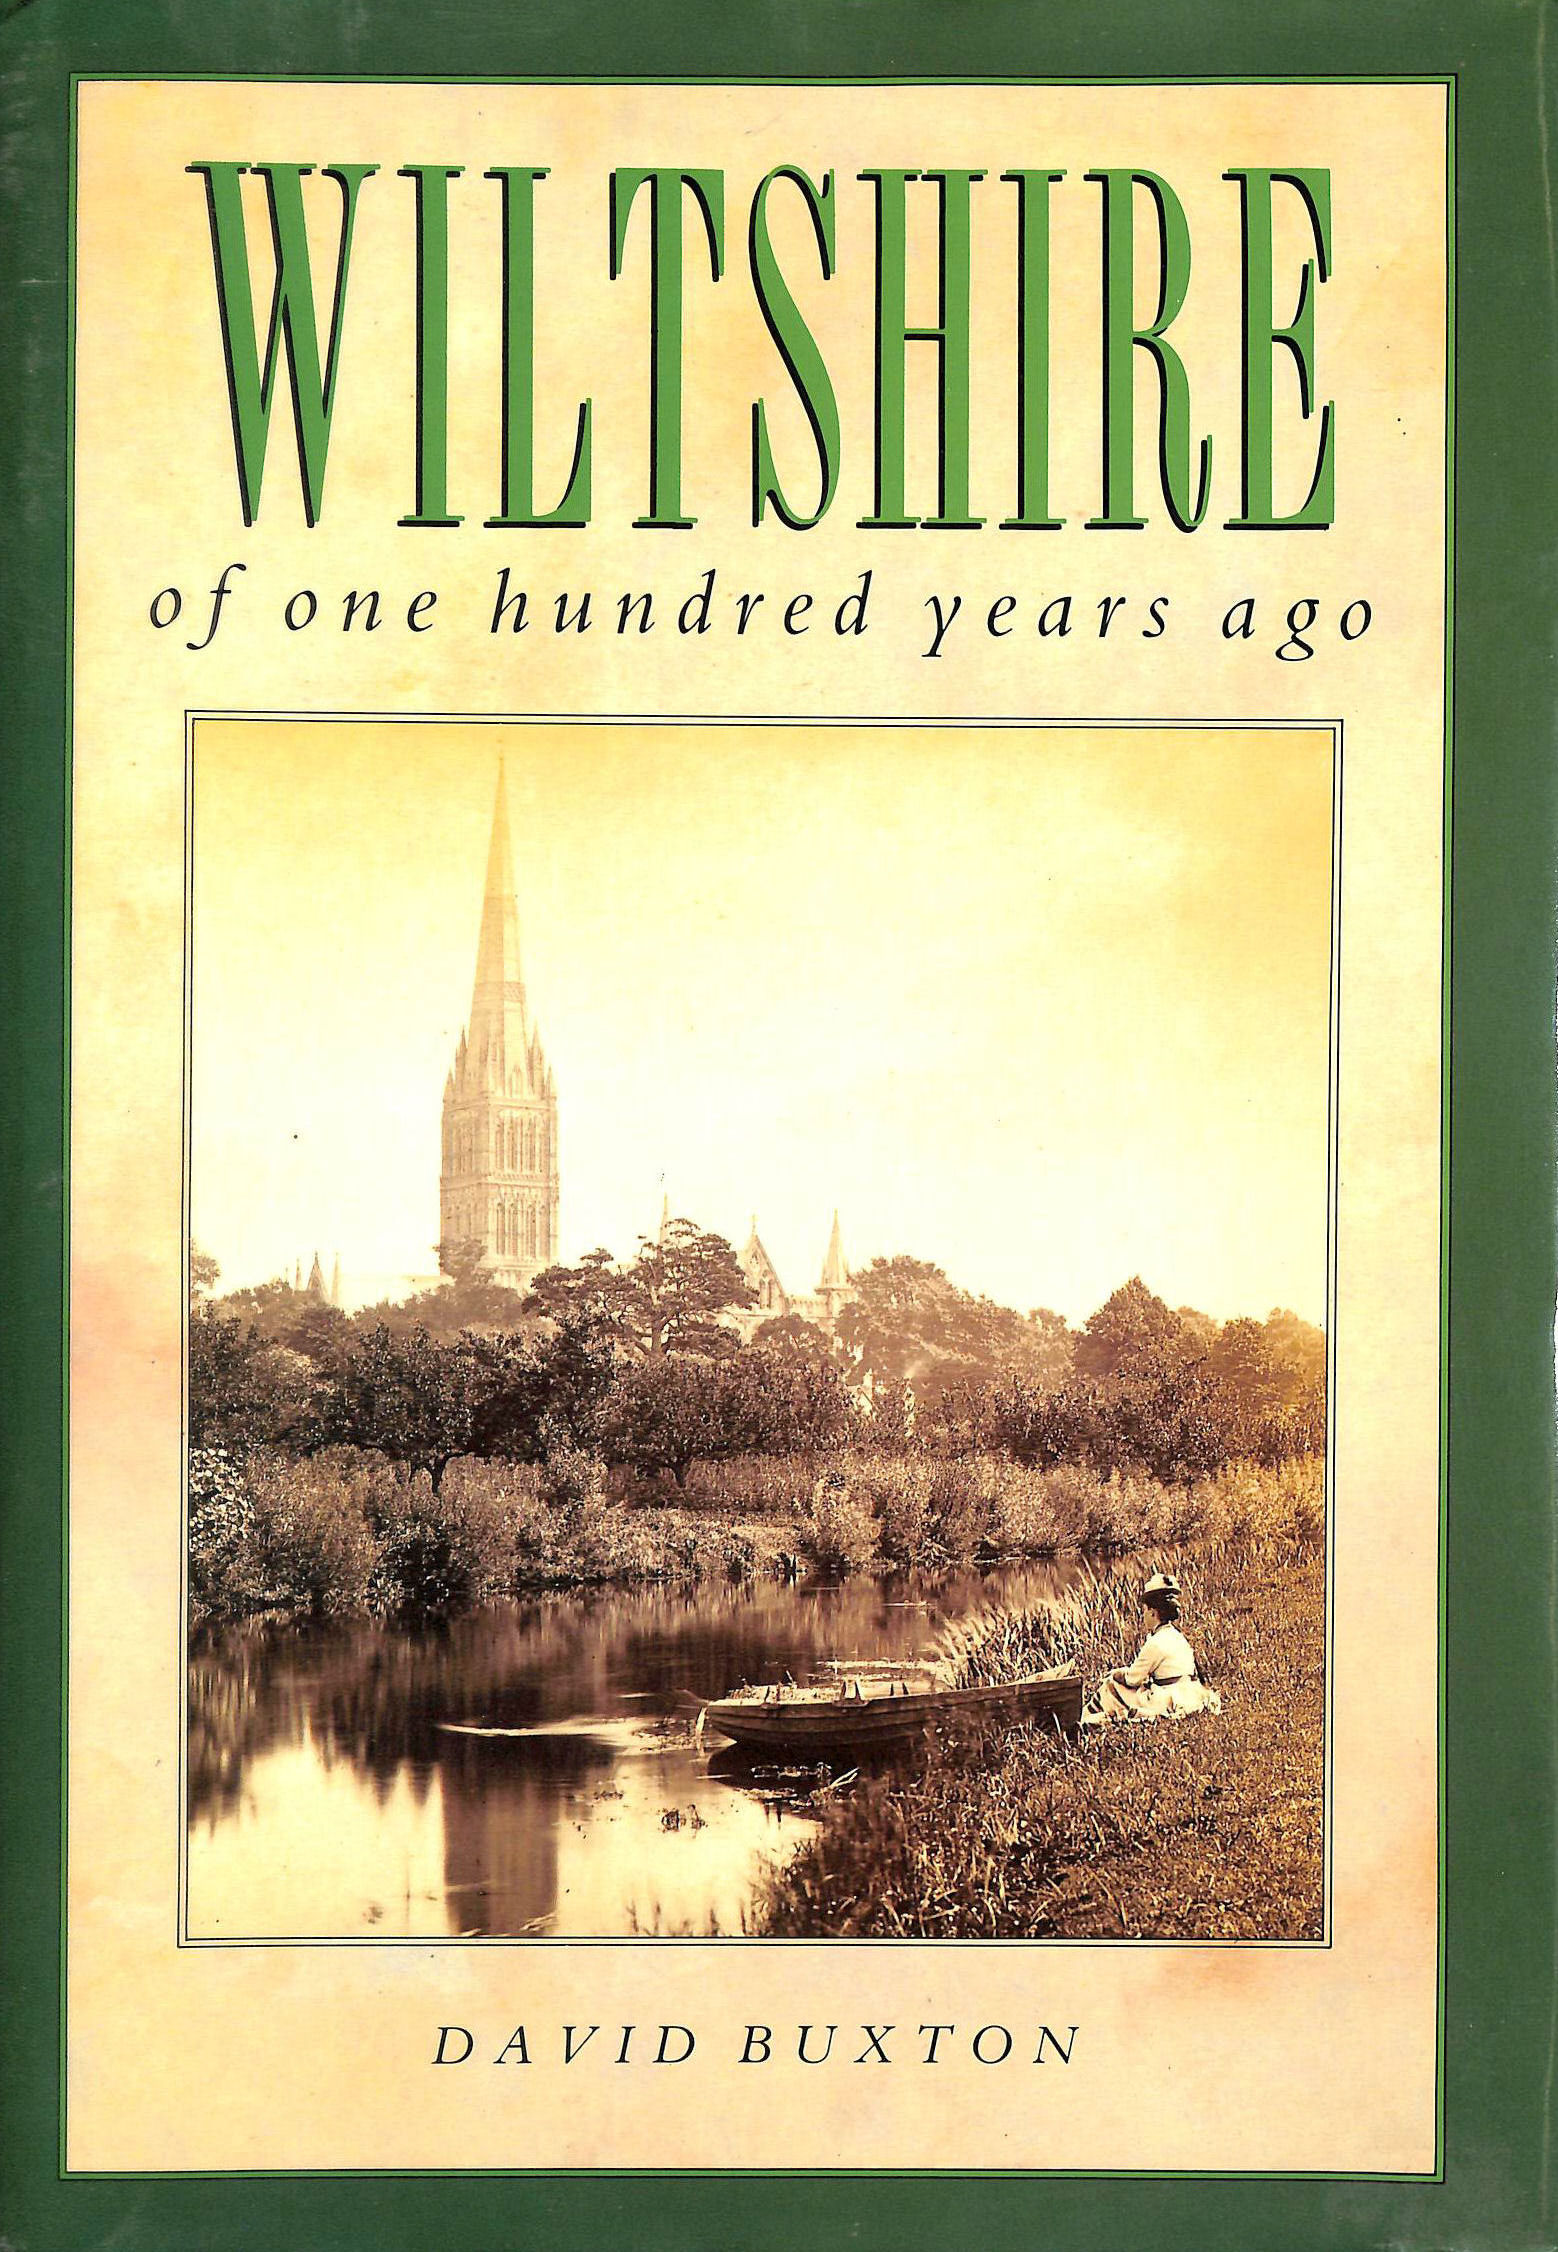 Image for Wiltshire of One Hundred Years Ago (One Hundred Years Ago series)